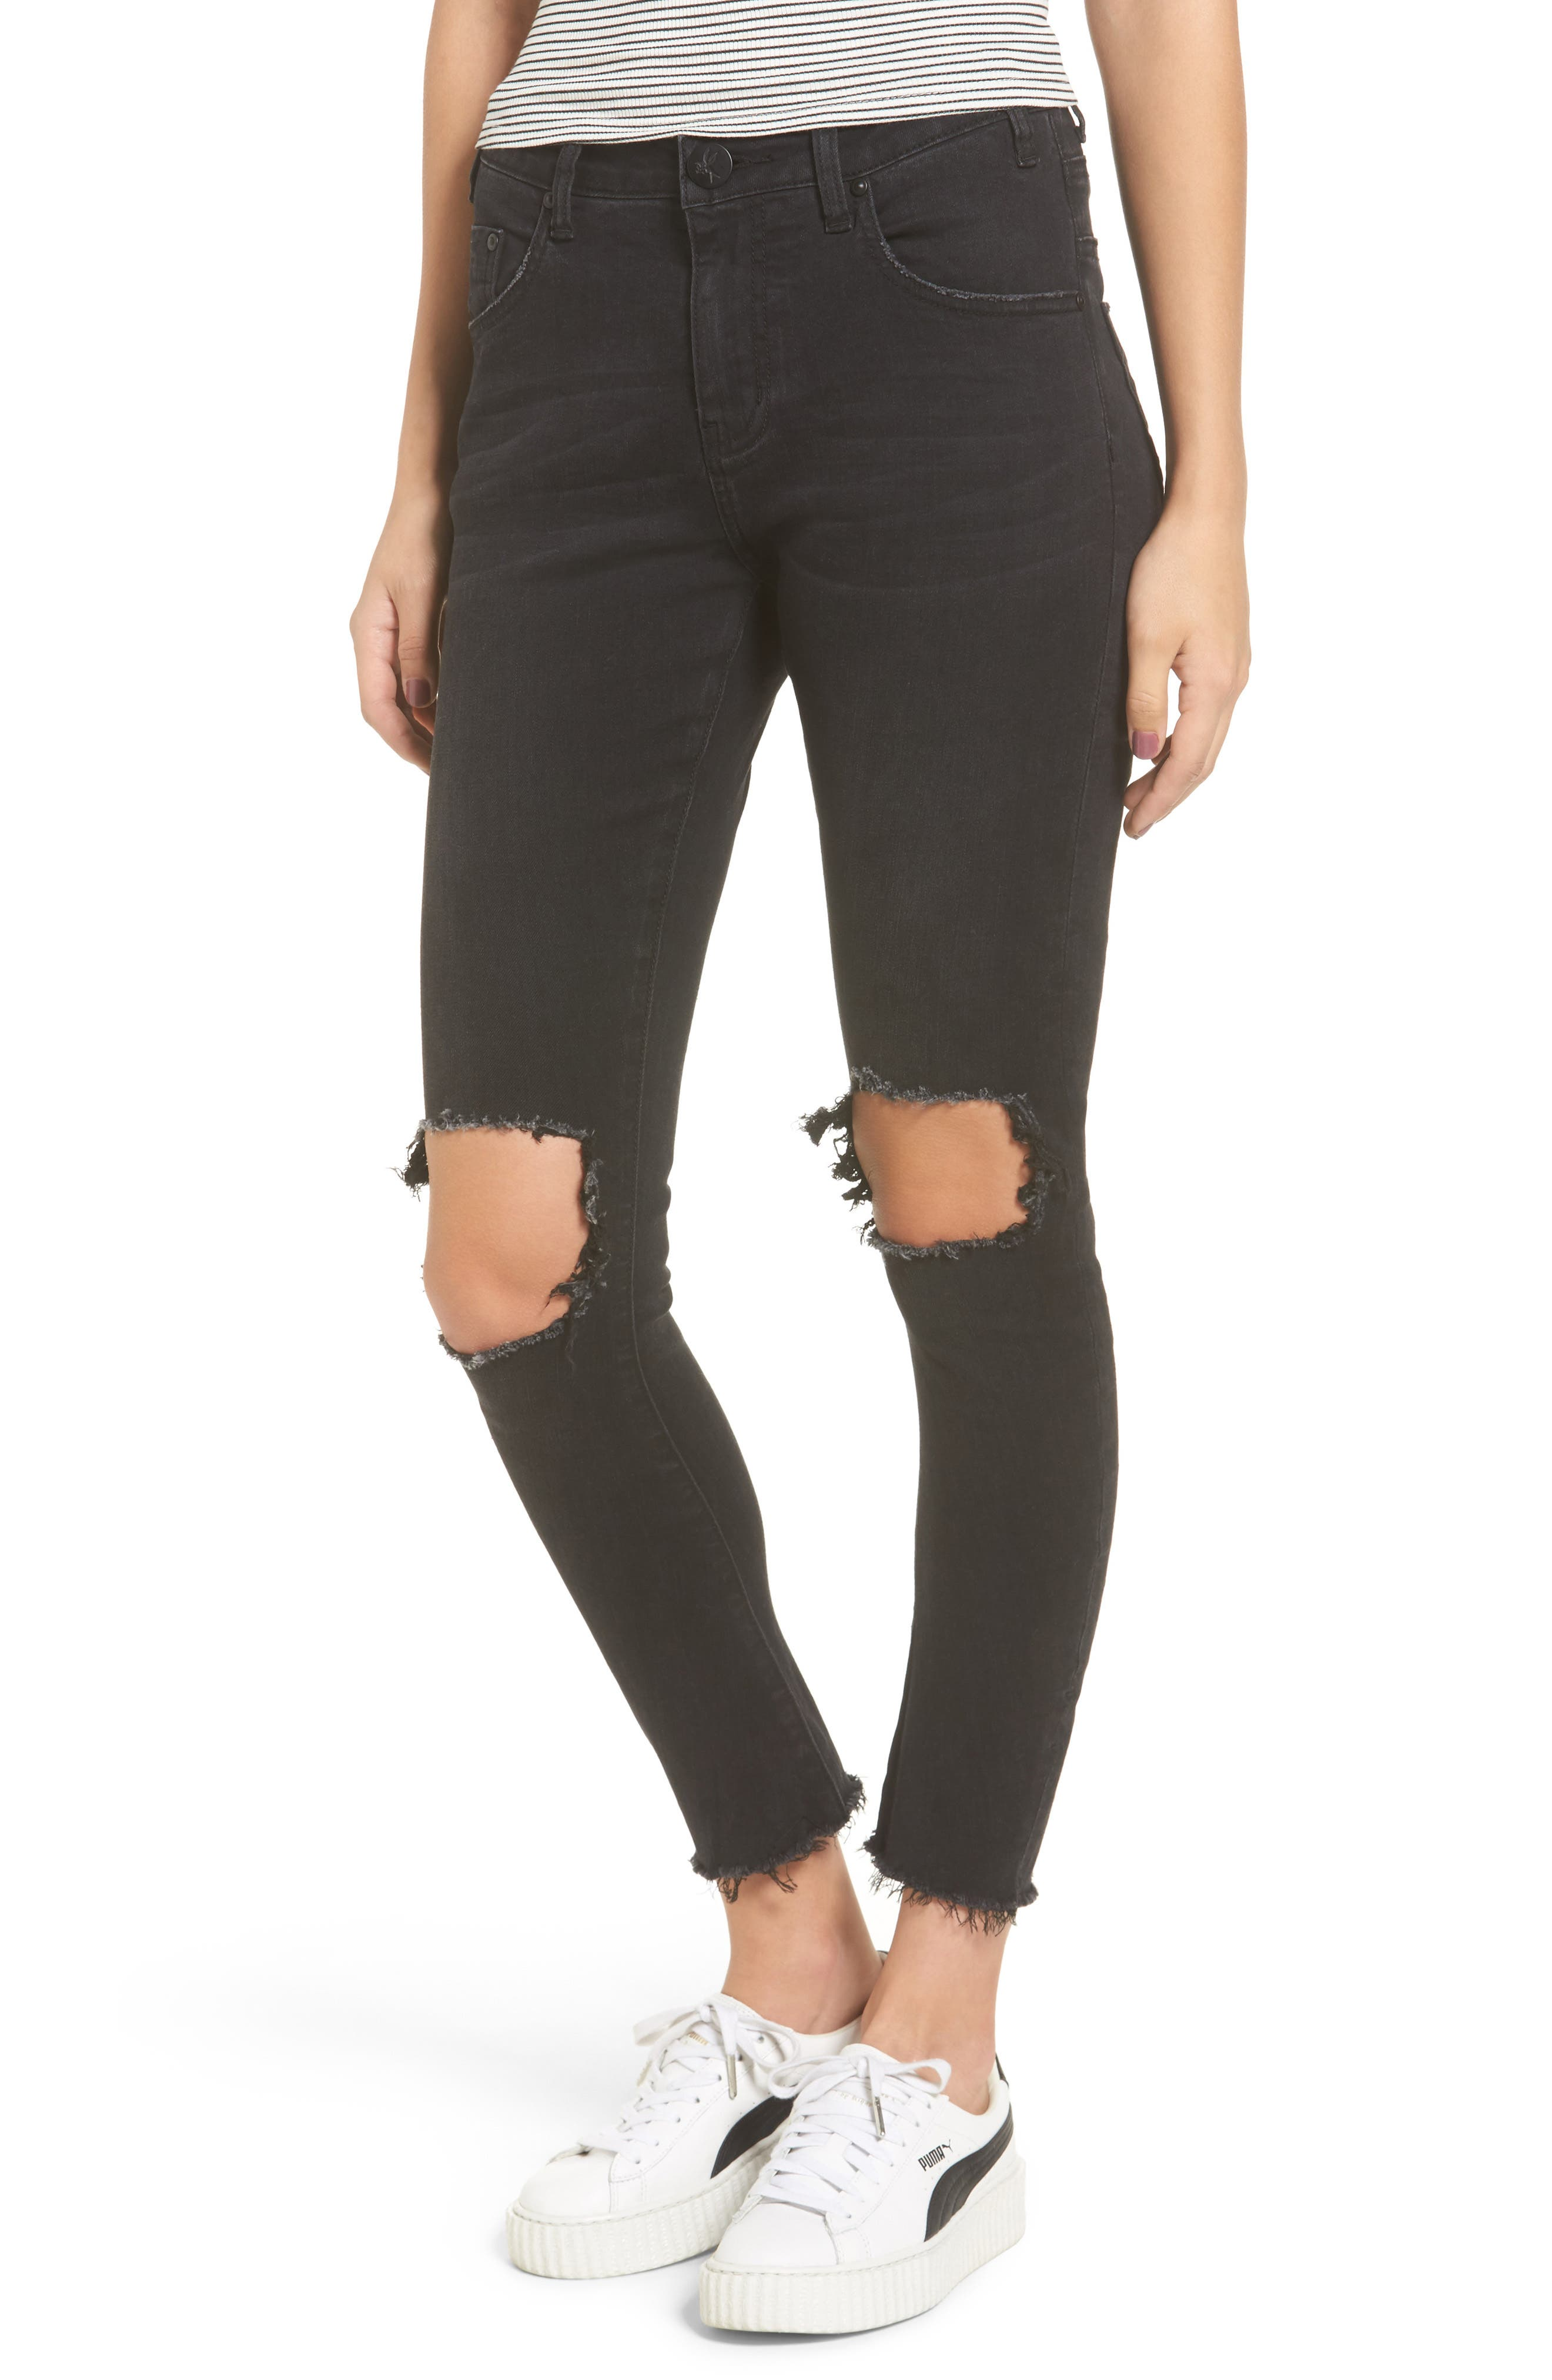 Freebirds Ripped High Waist Skinny Jeans,                         Main,                         color, 001